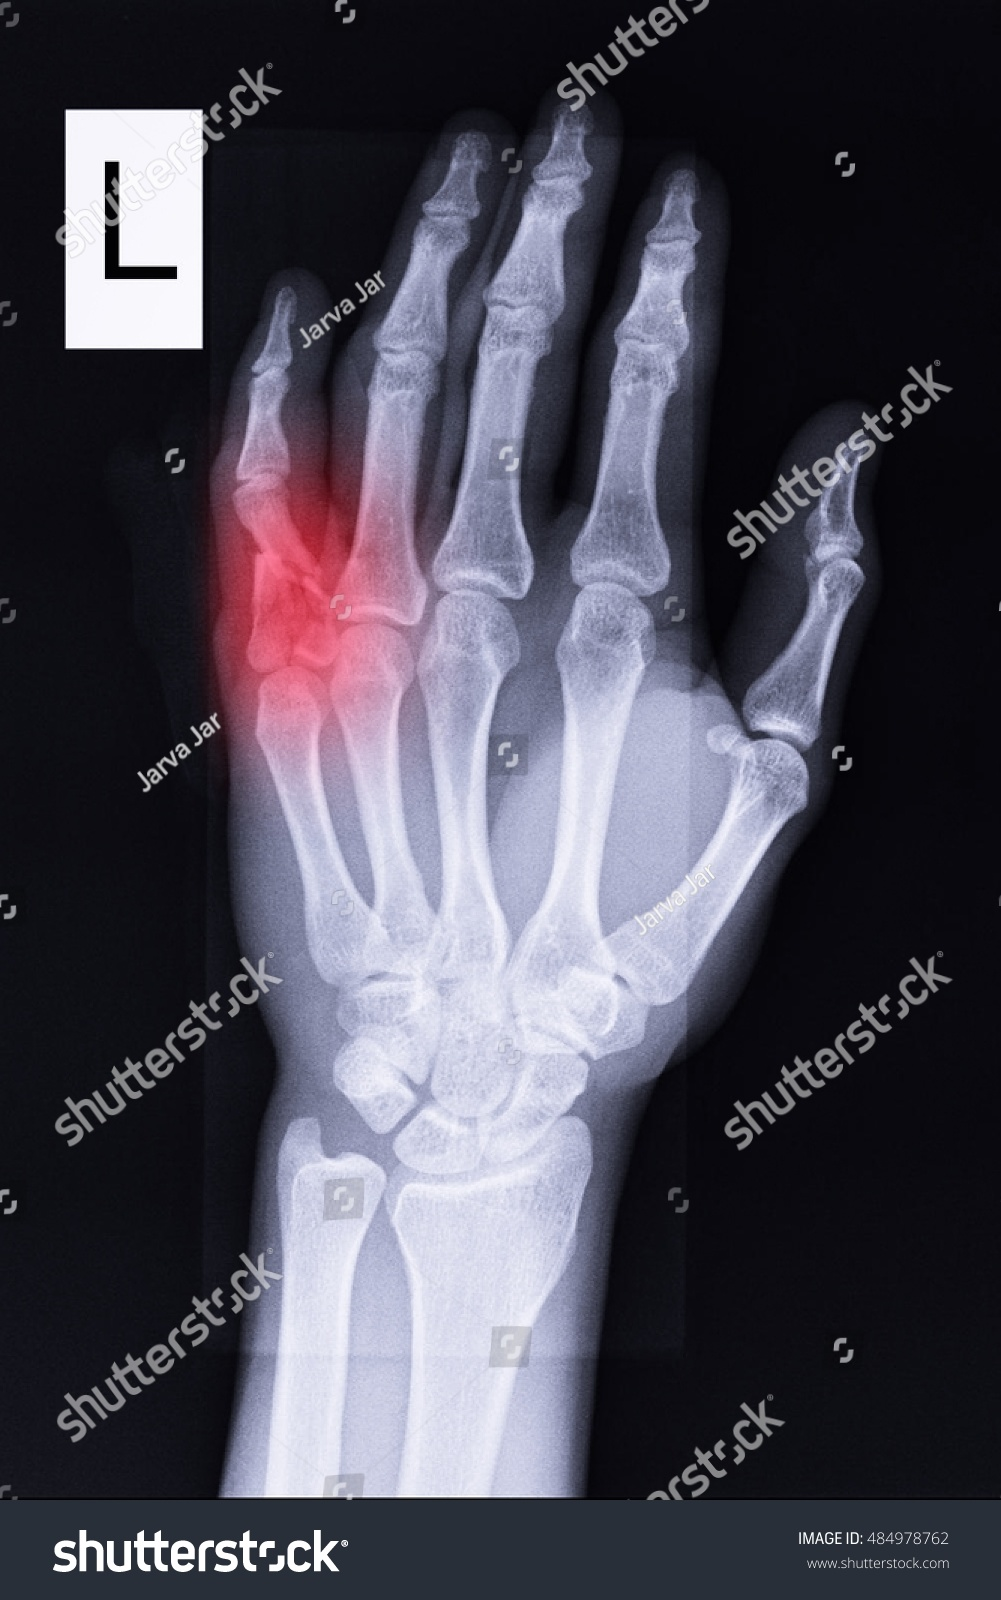 Why the little finger of the left hand goes numb What to do if the hand goes numb 23